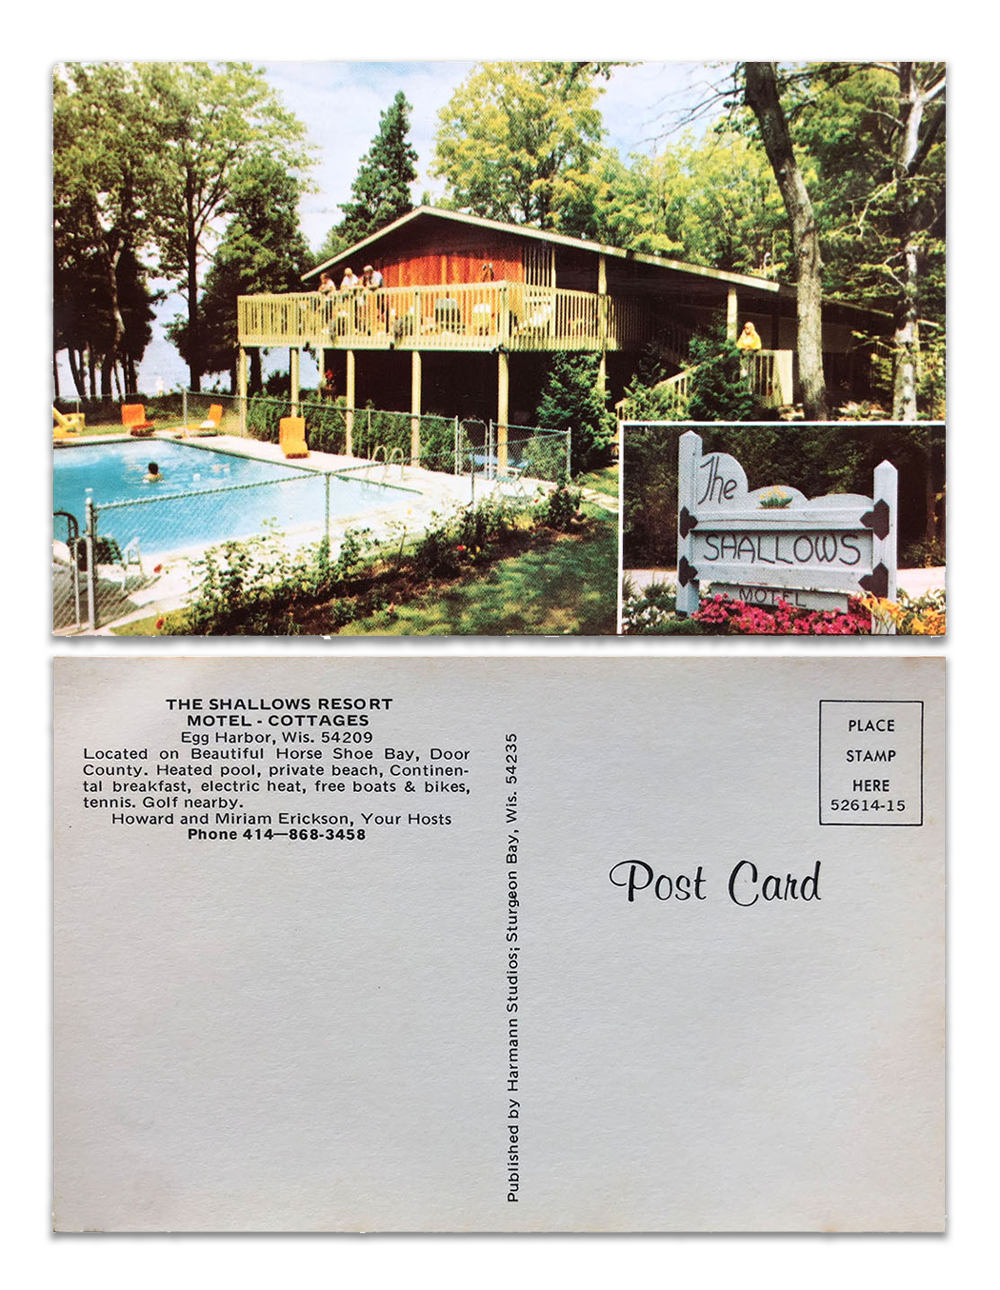 Vintage postcard of the Shallows Resort